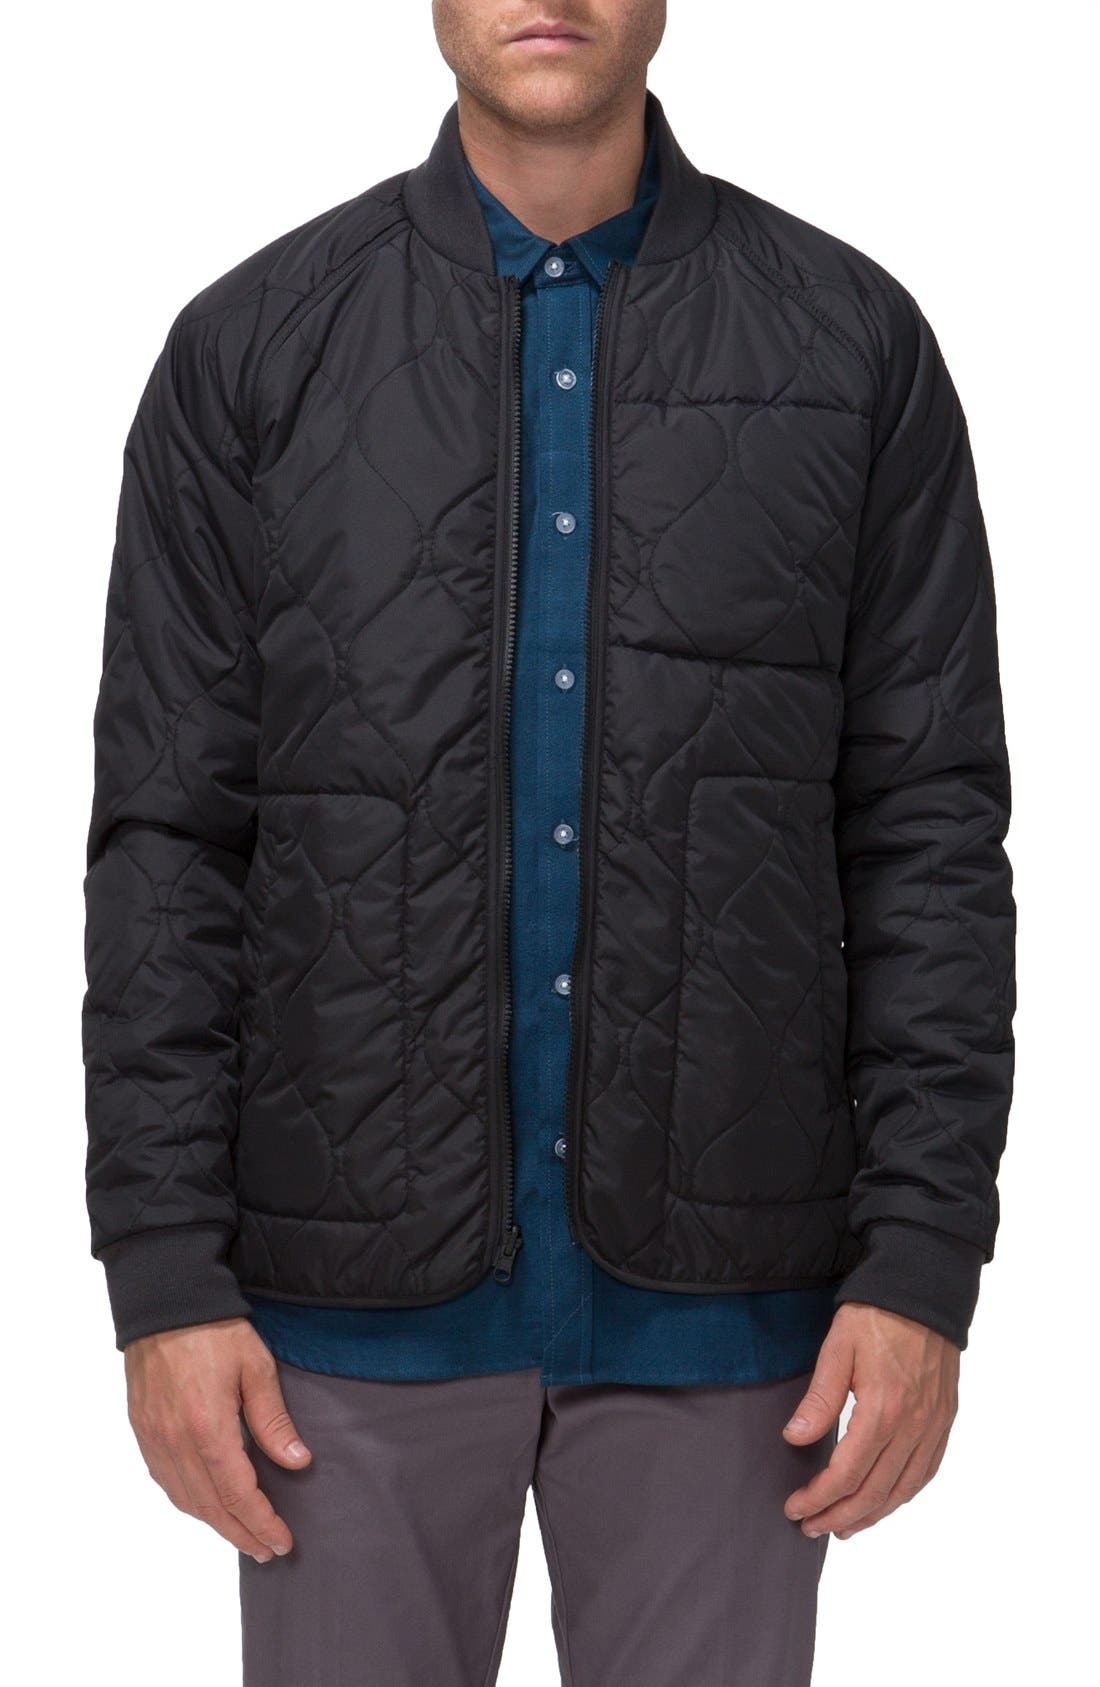 Fullton Zip-In Compatible Quilted Bomber Jacket,                         Main,                         color, Black